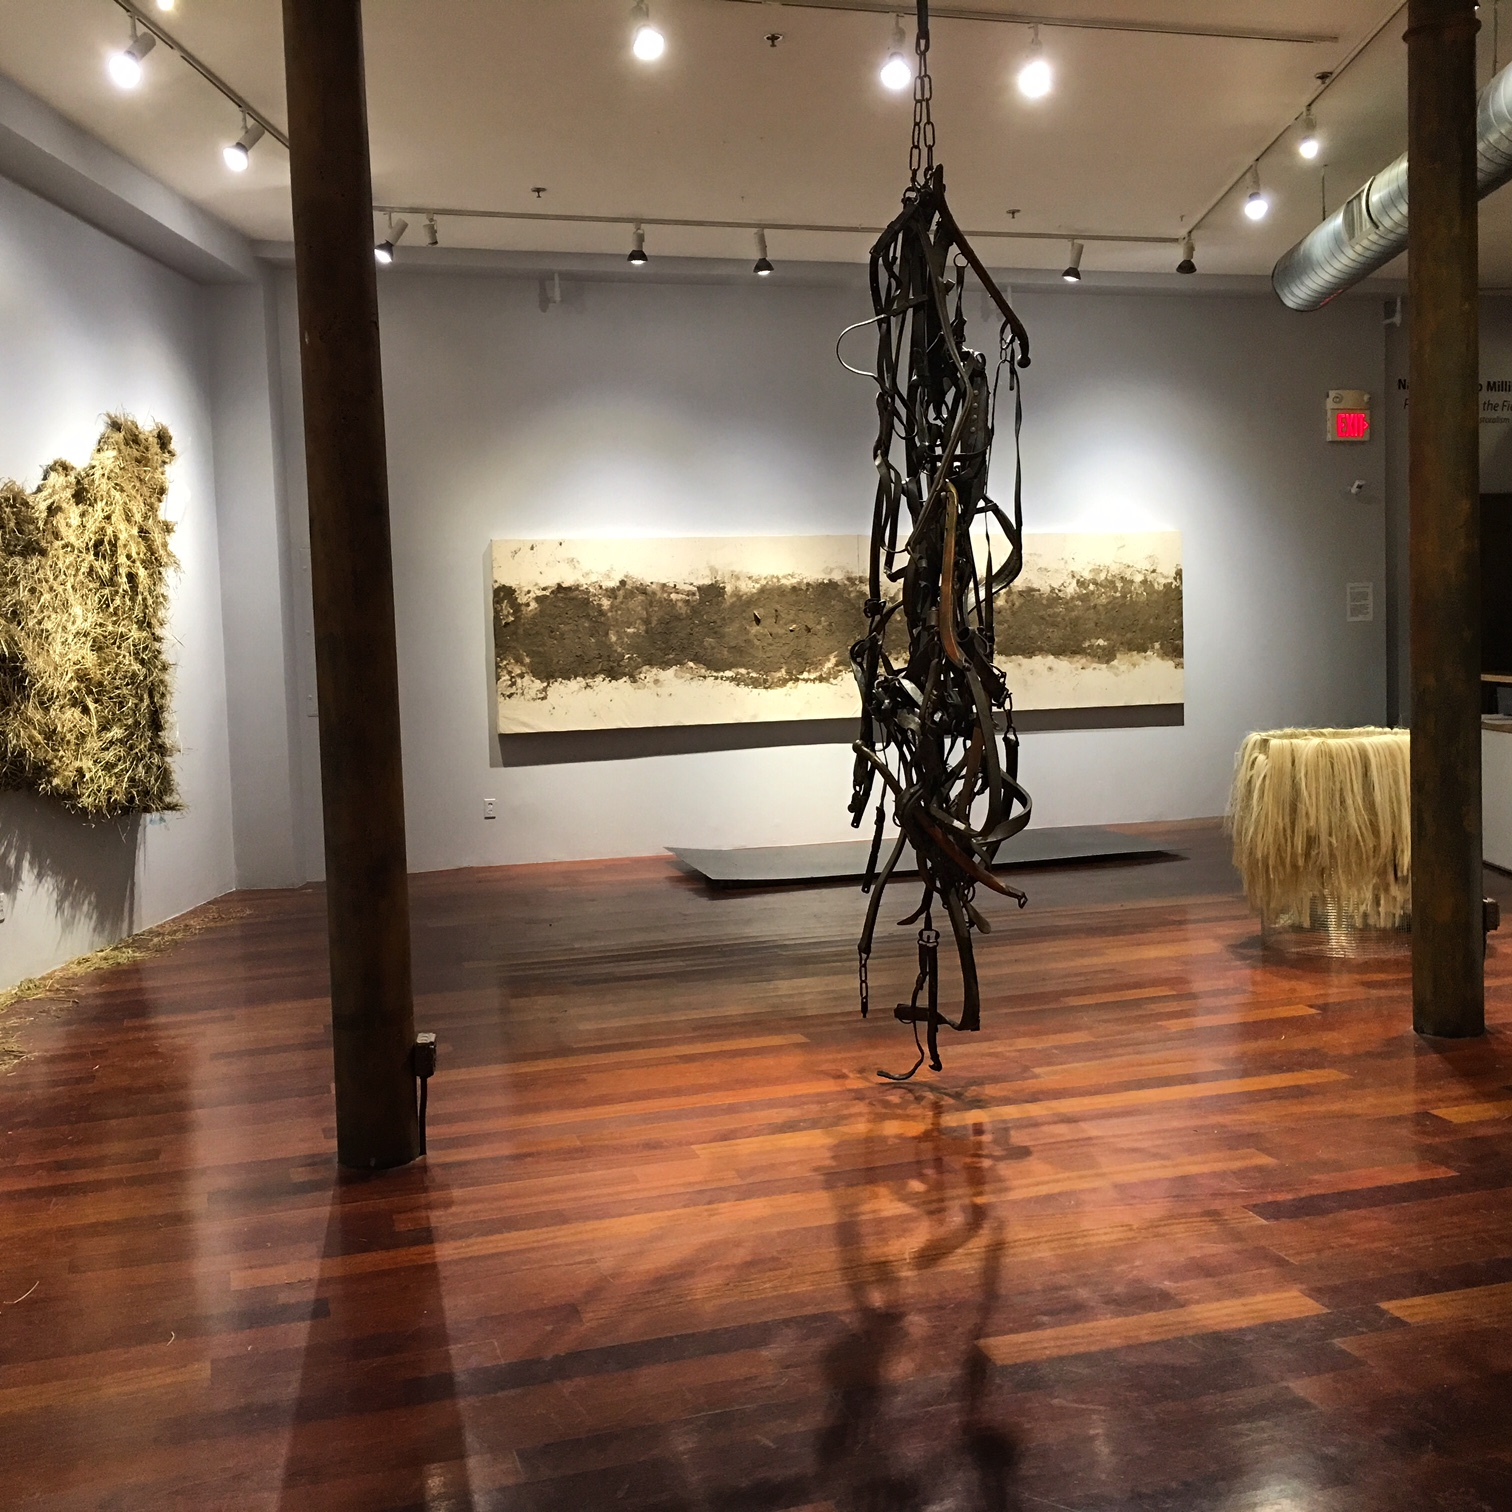 Installation view of Postcards from the Field: Contemporary Pastoralism